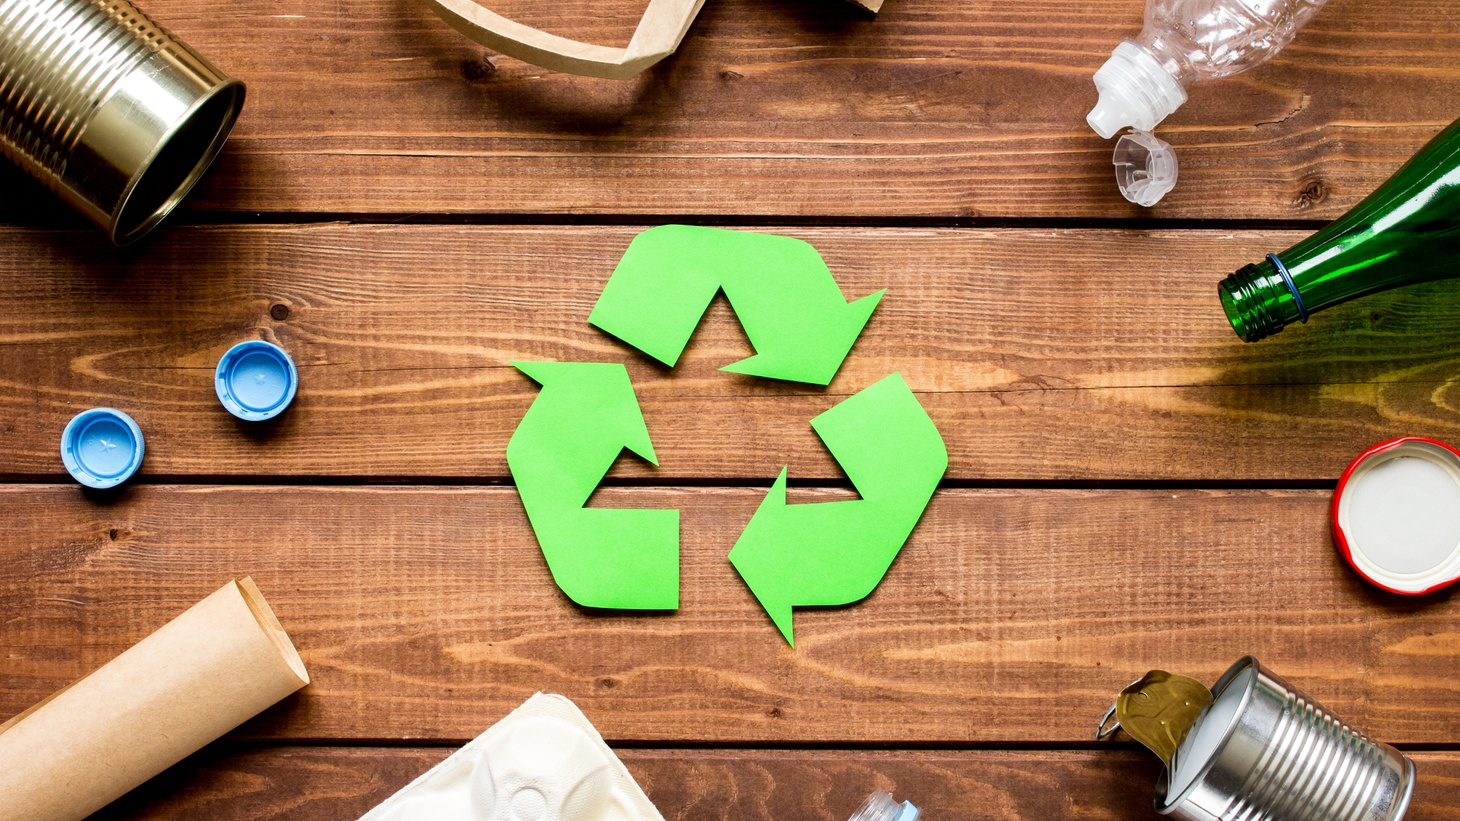 """The """"chasing arrows"""" symbol is often on plastic products that end up in landfills. """"A lot of these items are theoretically recyclable under perfect conditions, but they're not actually recycled or recyclable under real-world conditions,"""" says State Senator Ben Allen."""